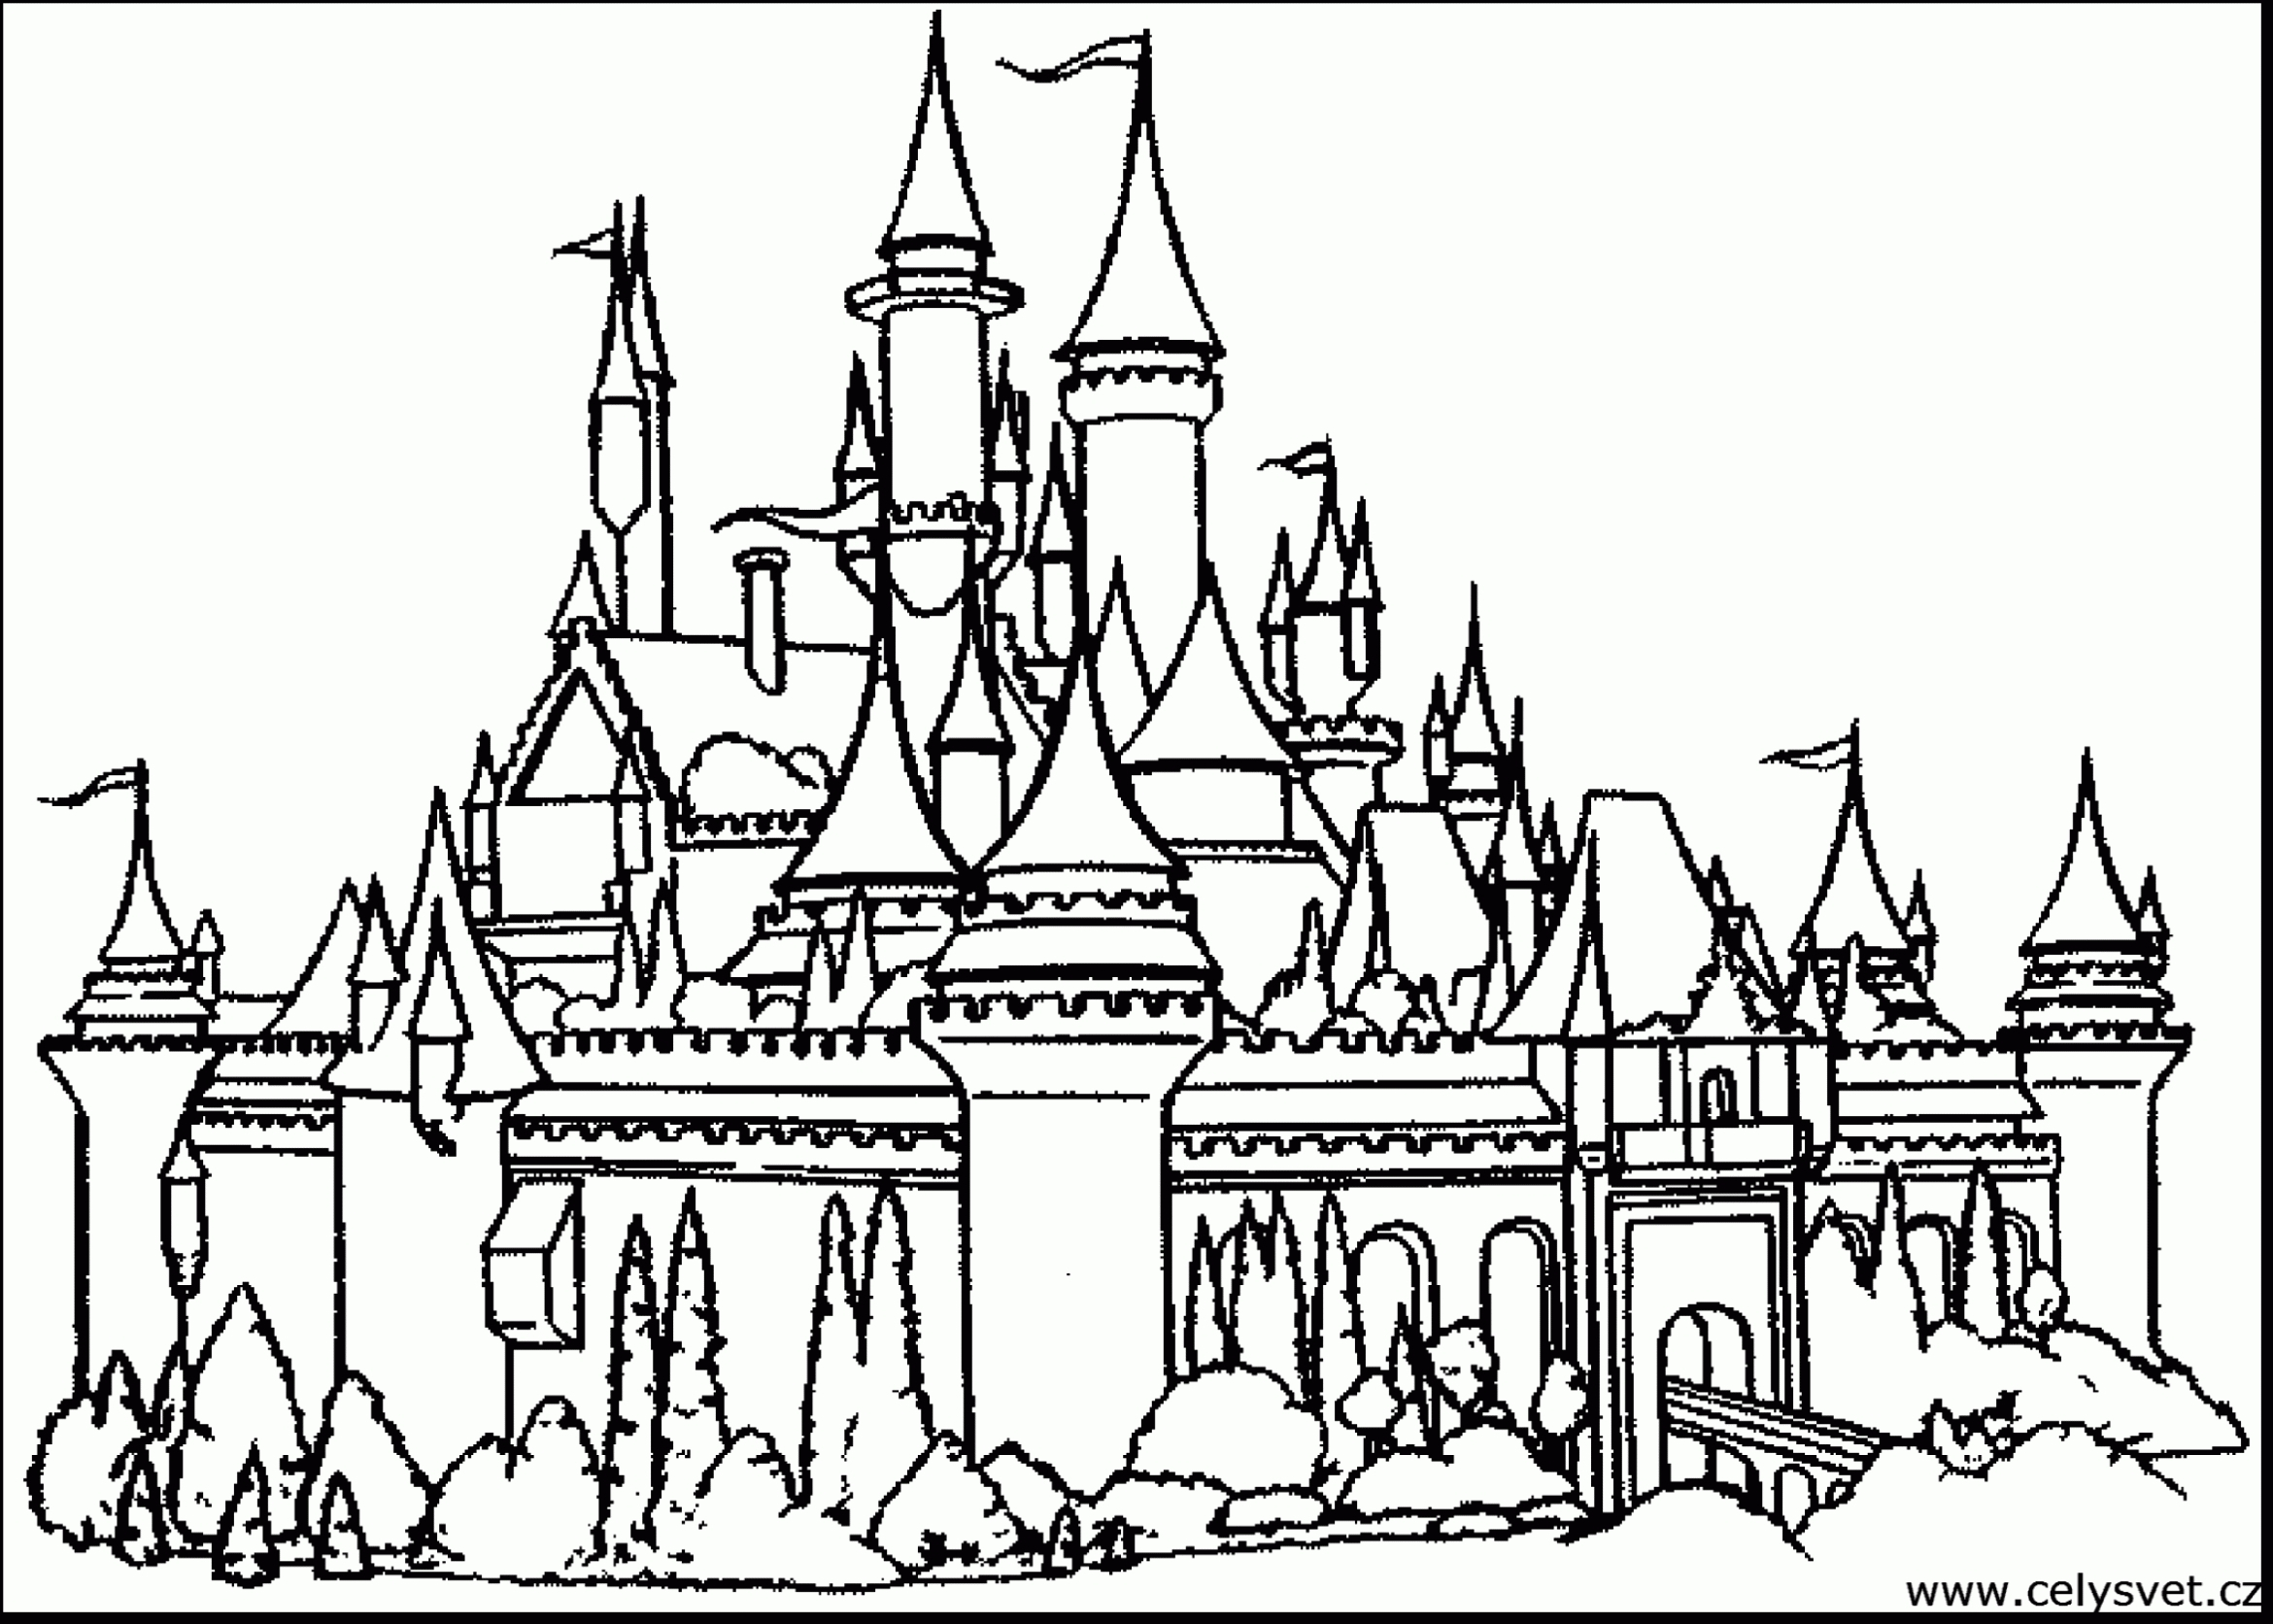 Walt Disney World Coloring Pages  to Print 19a - To print for your project